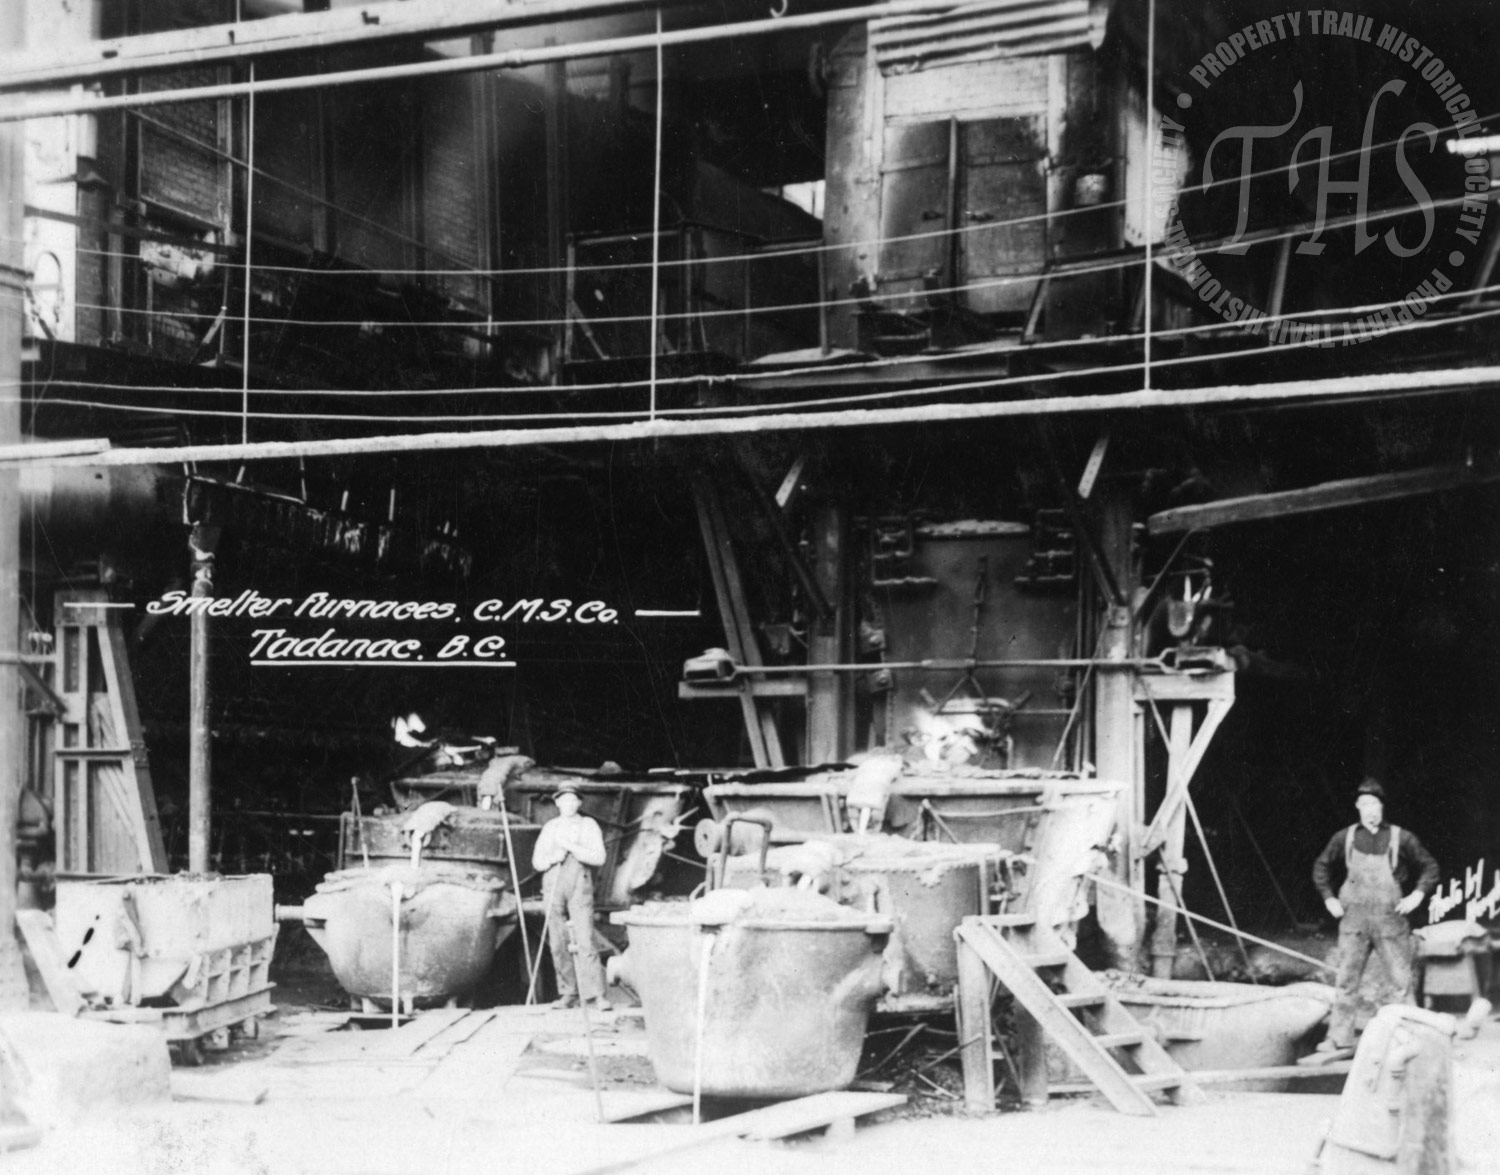 Trail Smelter furnaces (Hughes)- 1920